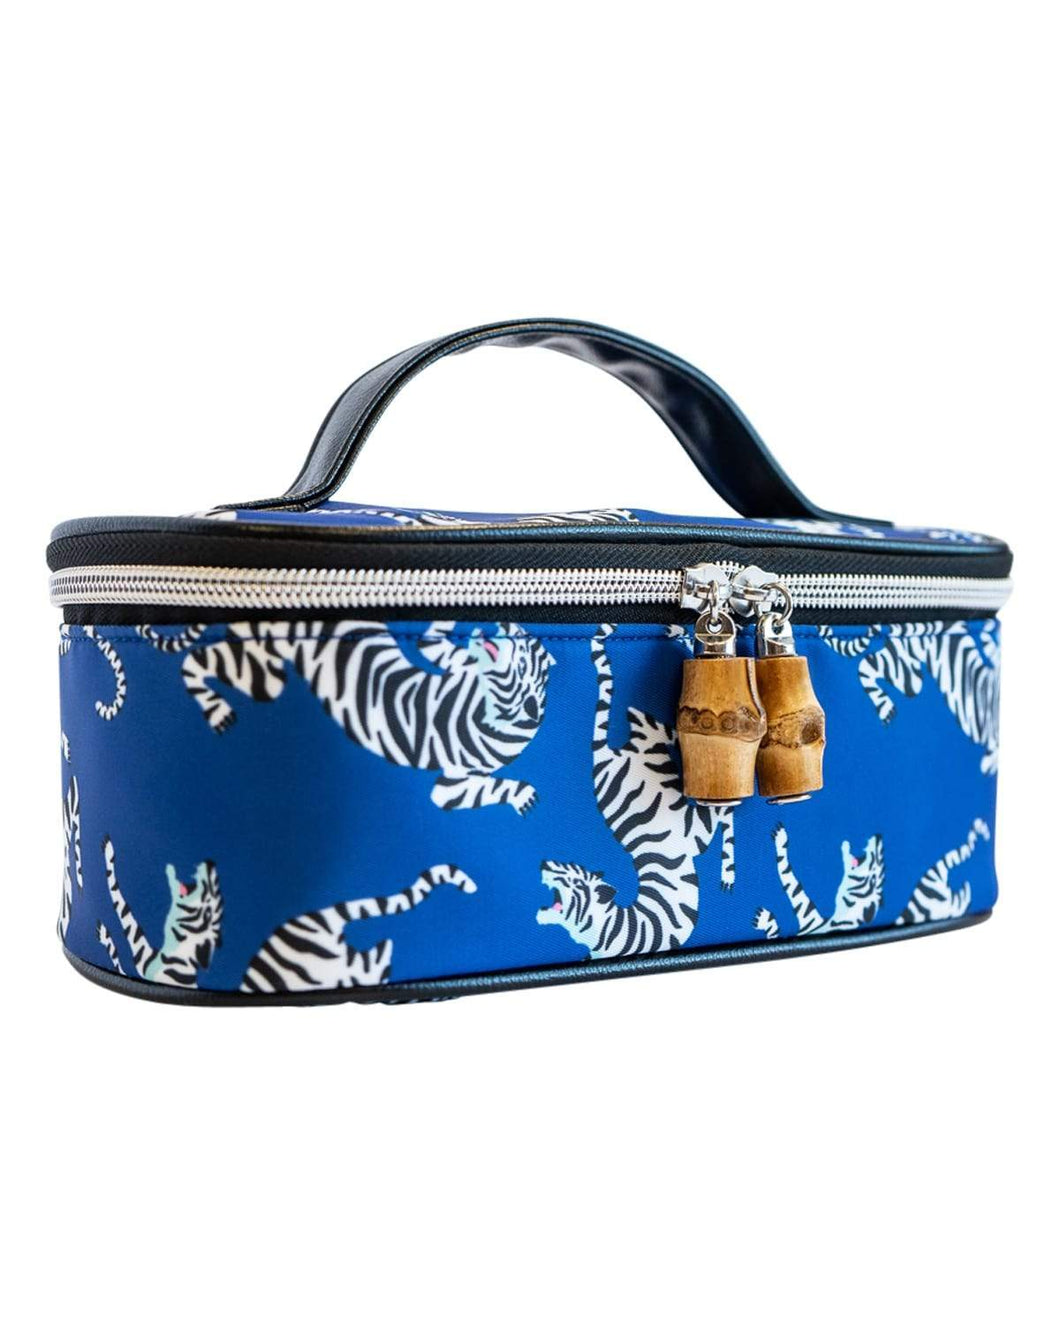 TRVL Design Getaway Bag (Bengal Cat Blue)